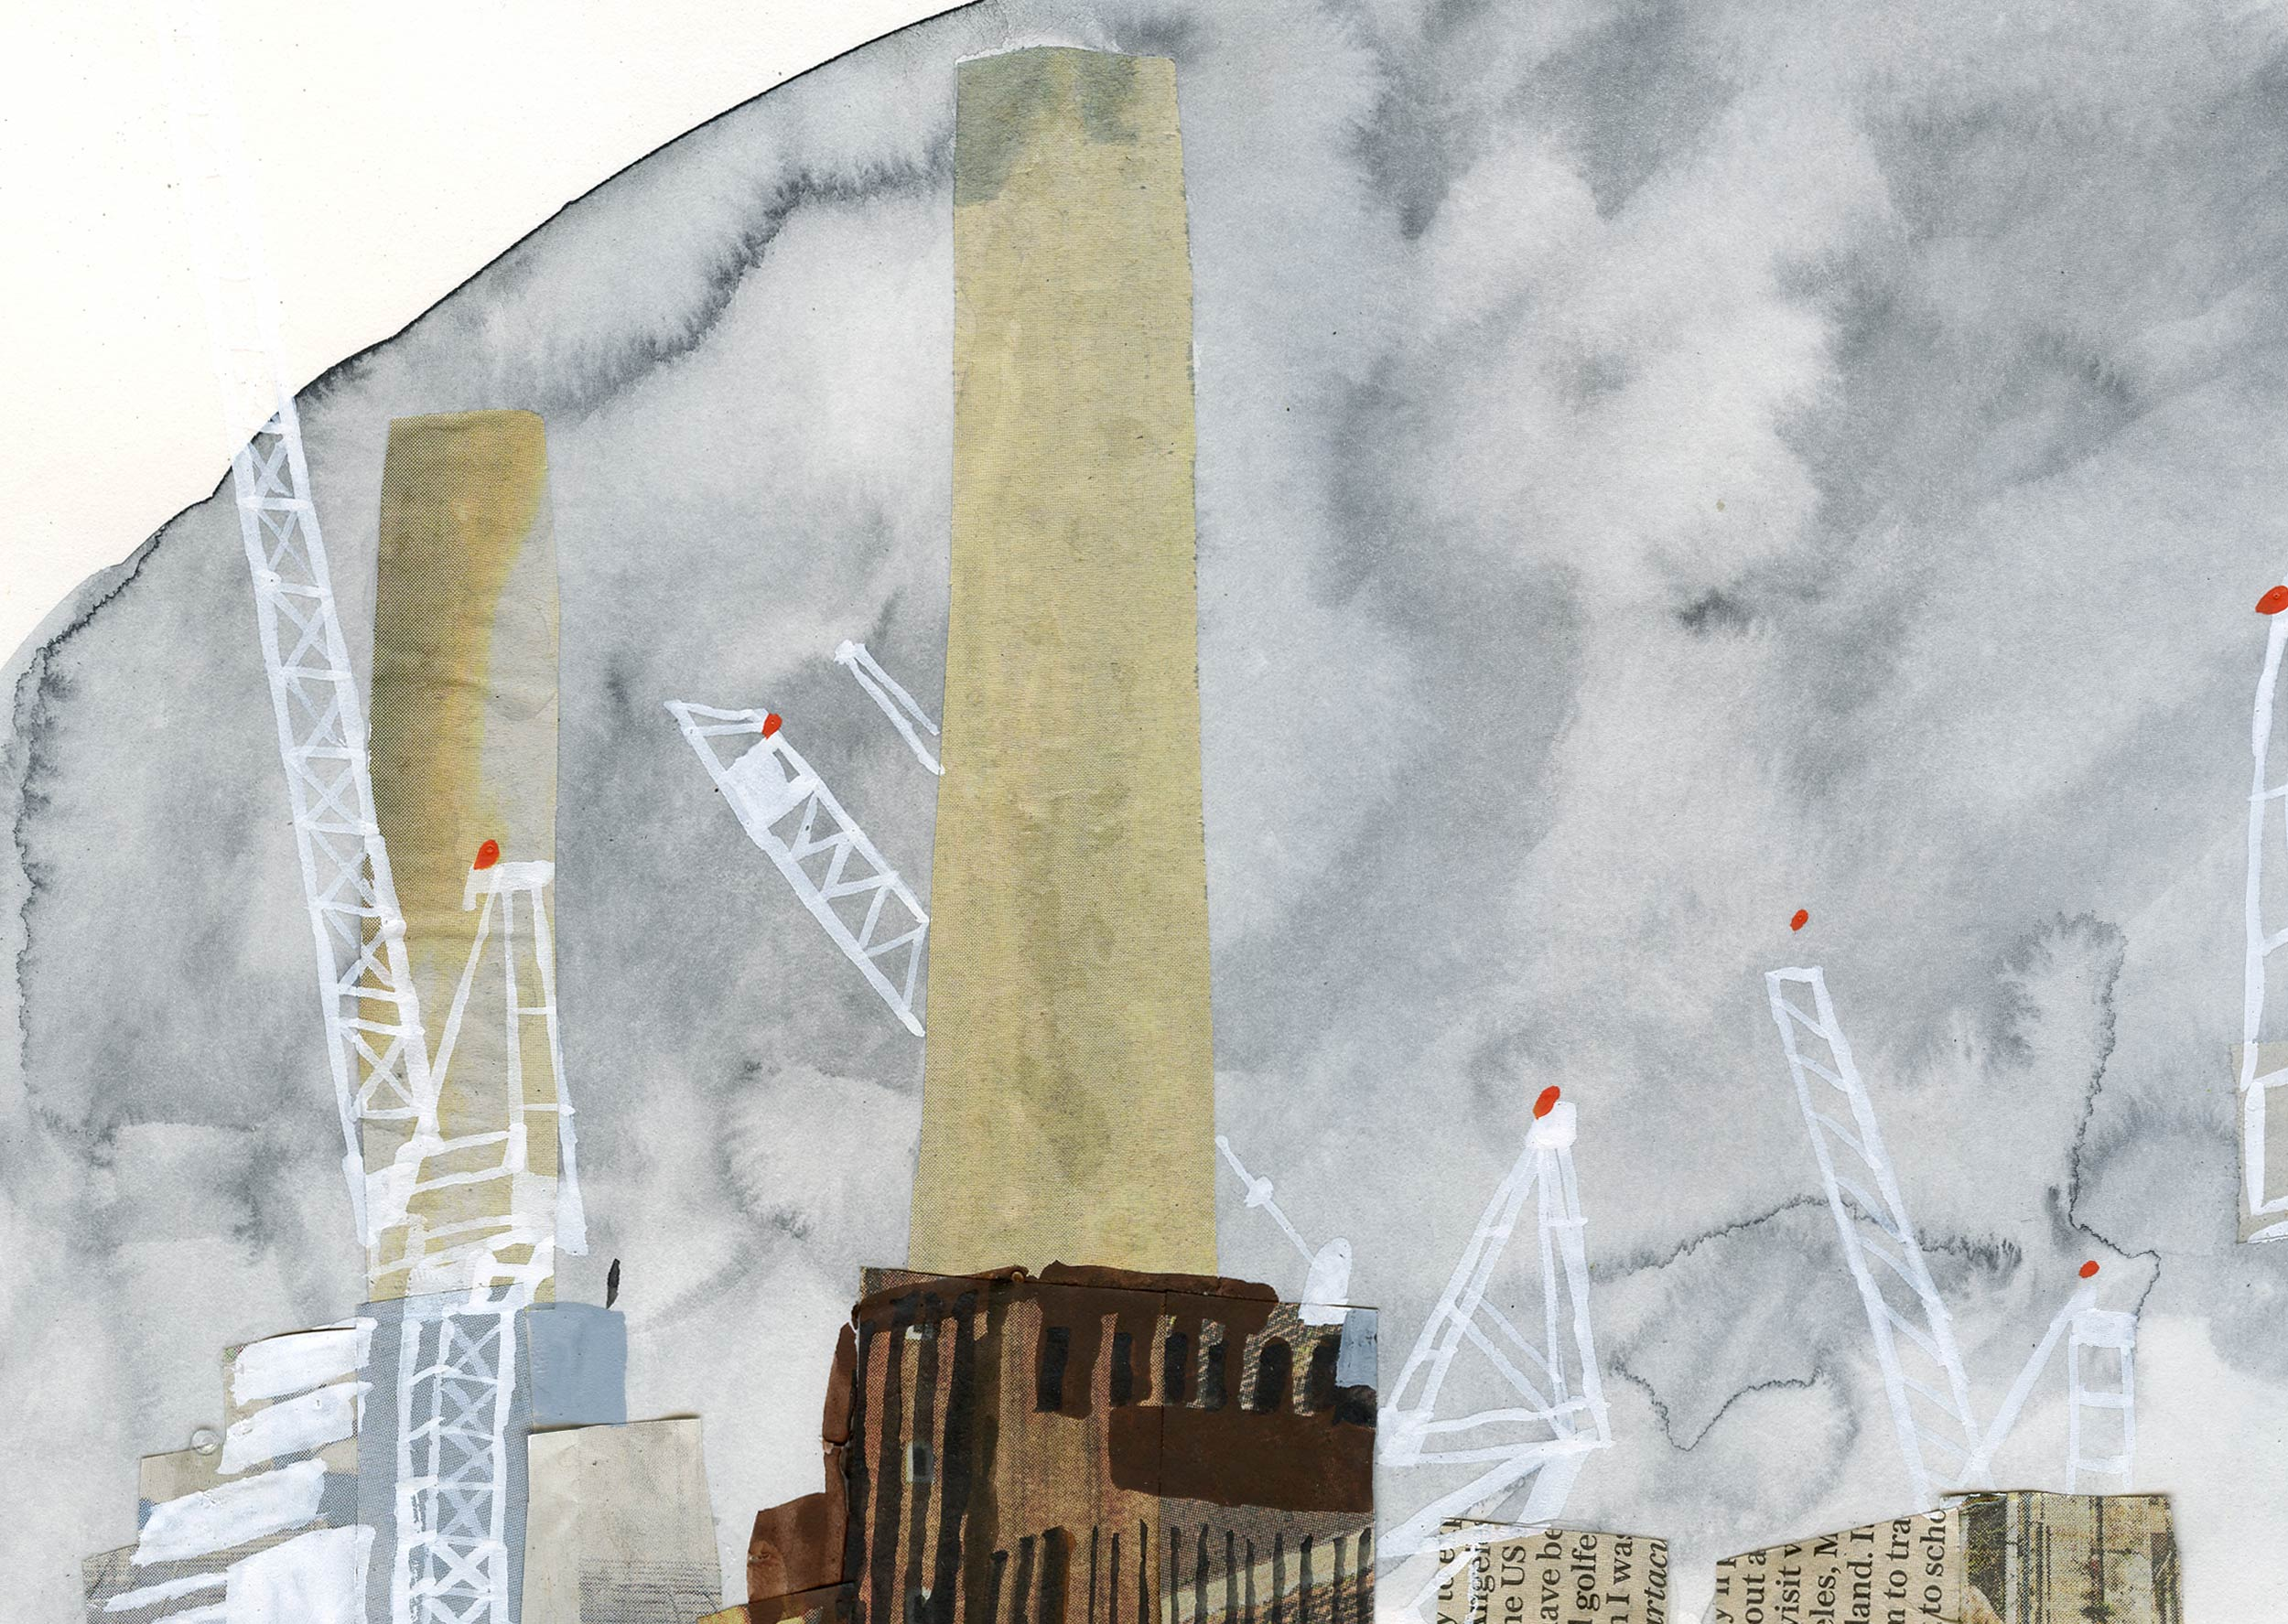 Battersea Power Station by James Oses, image 2